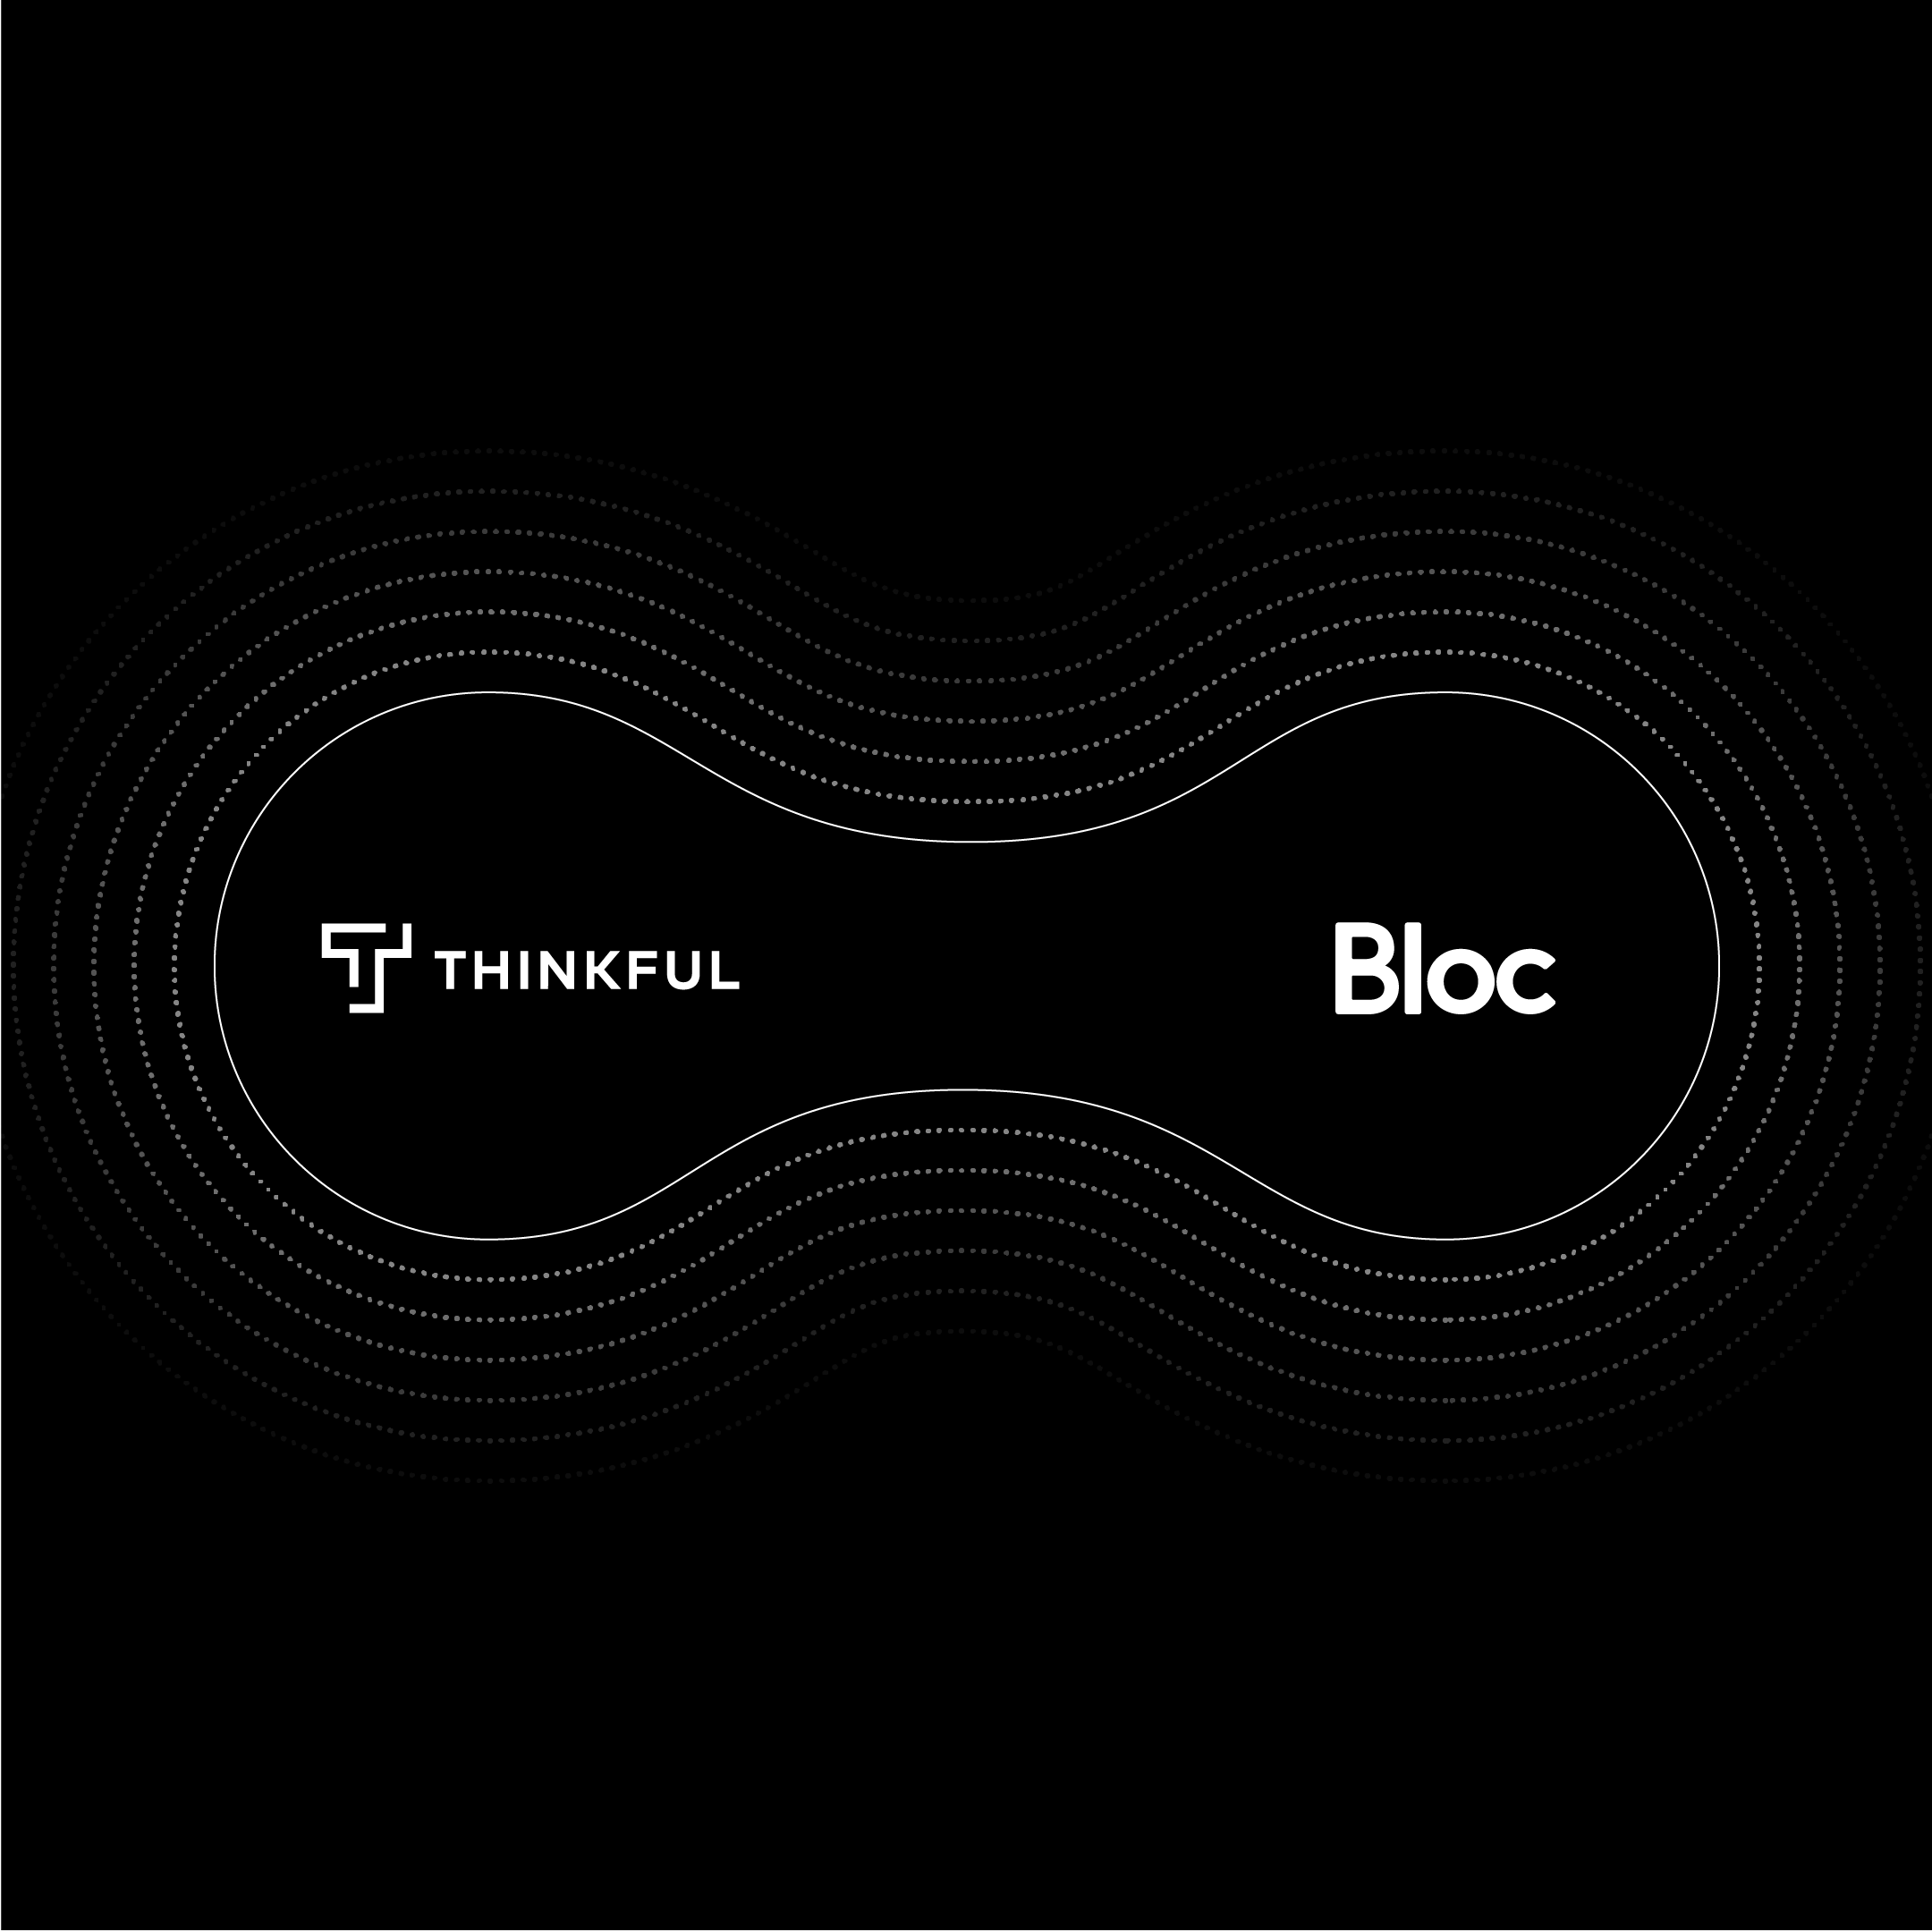 Thinkful acquires Bloc